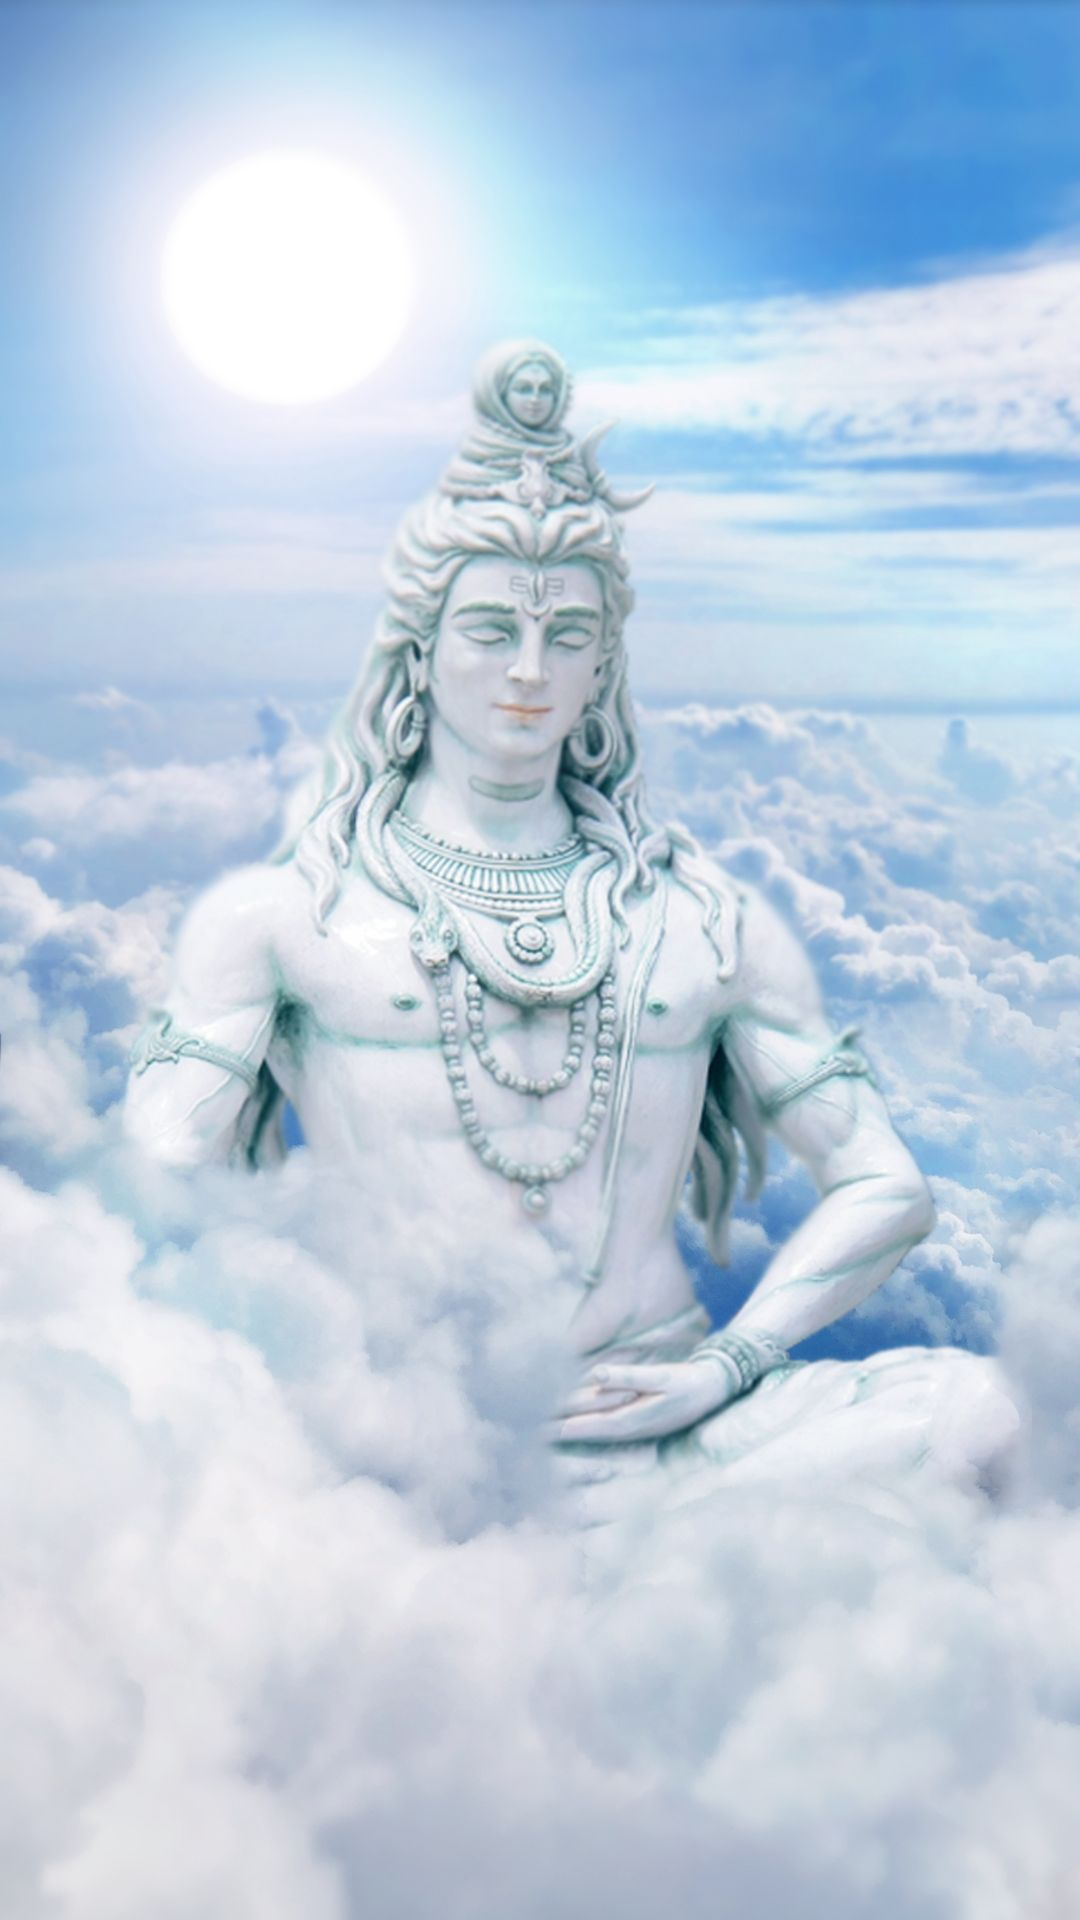 Shiva Hd Wallpaper Full Hd 1920 X 1080 Lord Shiva Statue Lord Shiva Painting Lord Shiva Pics Hd wallpaper of lord shiva for android